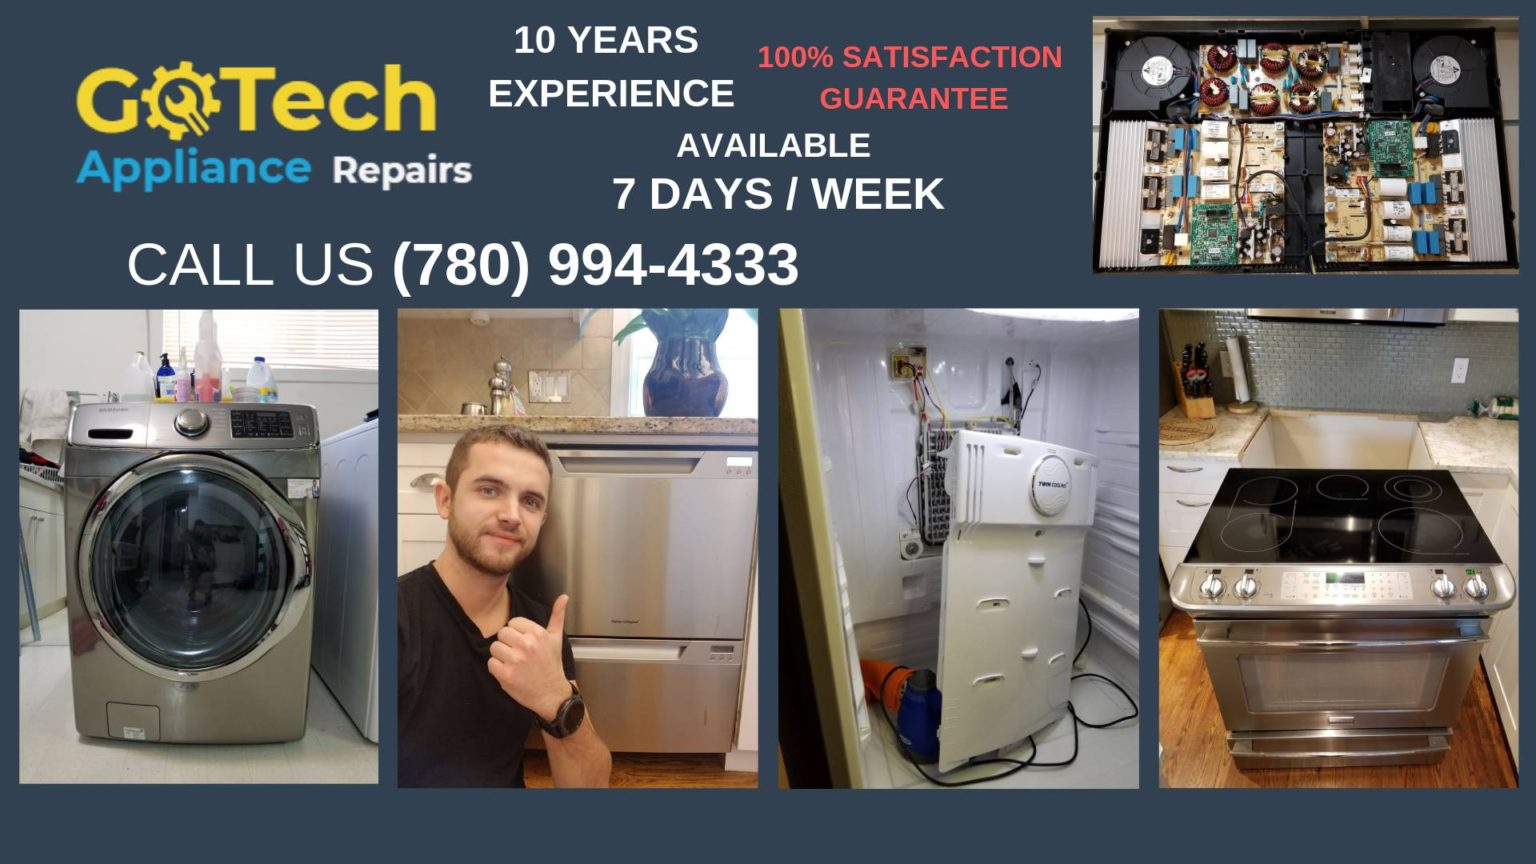 GoTech Appliance repair In Edmonton Helping with the repair